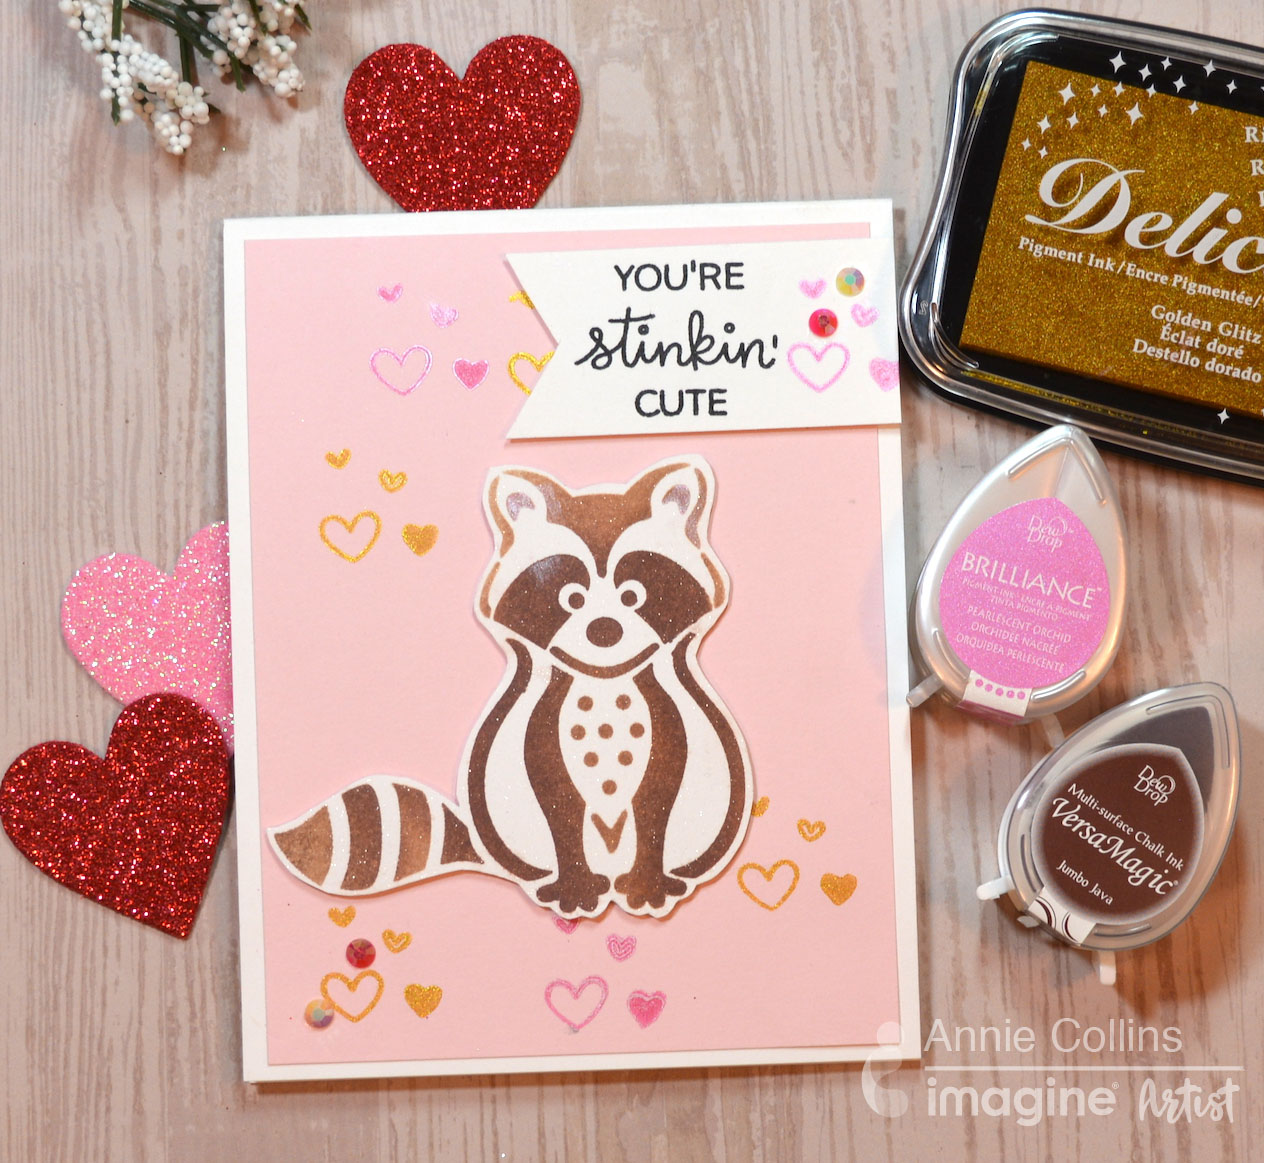 Quick & Easy Projects: You're Stinkin' Cute Valentine's Day Card